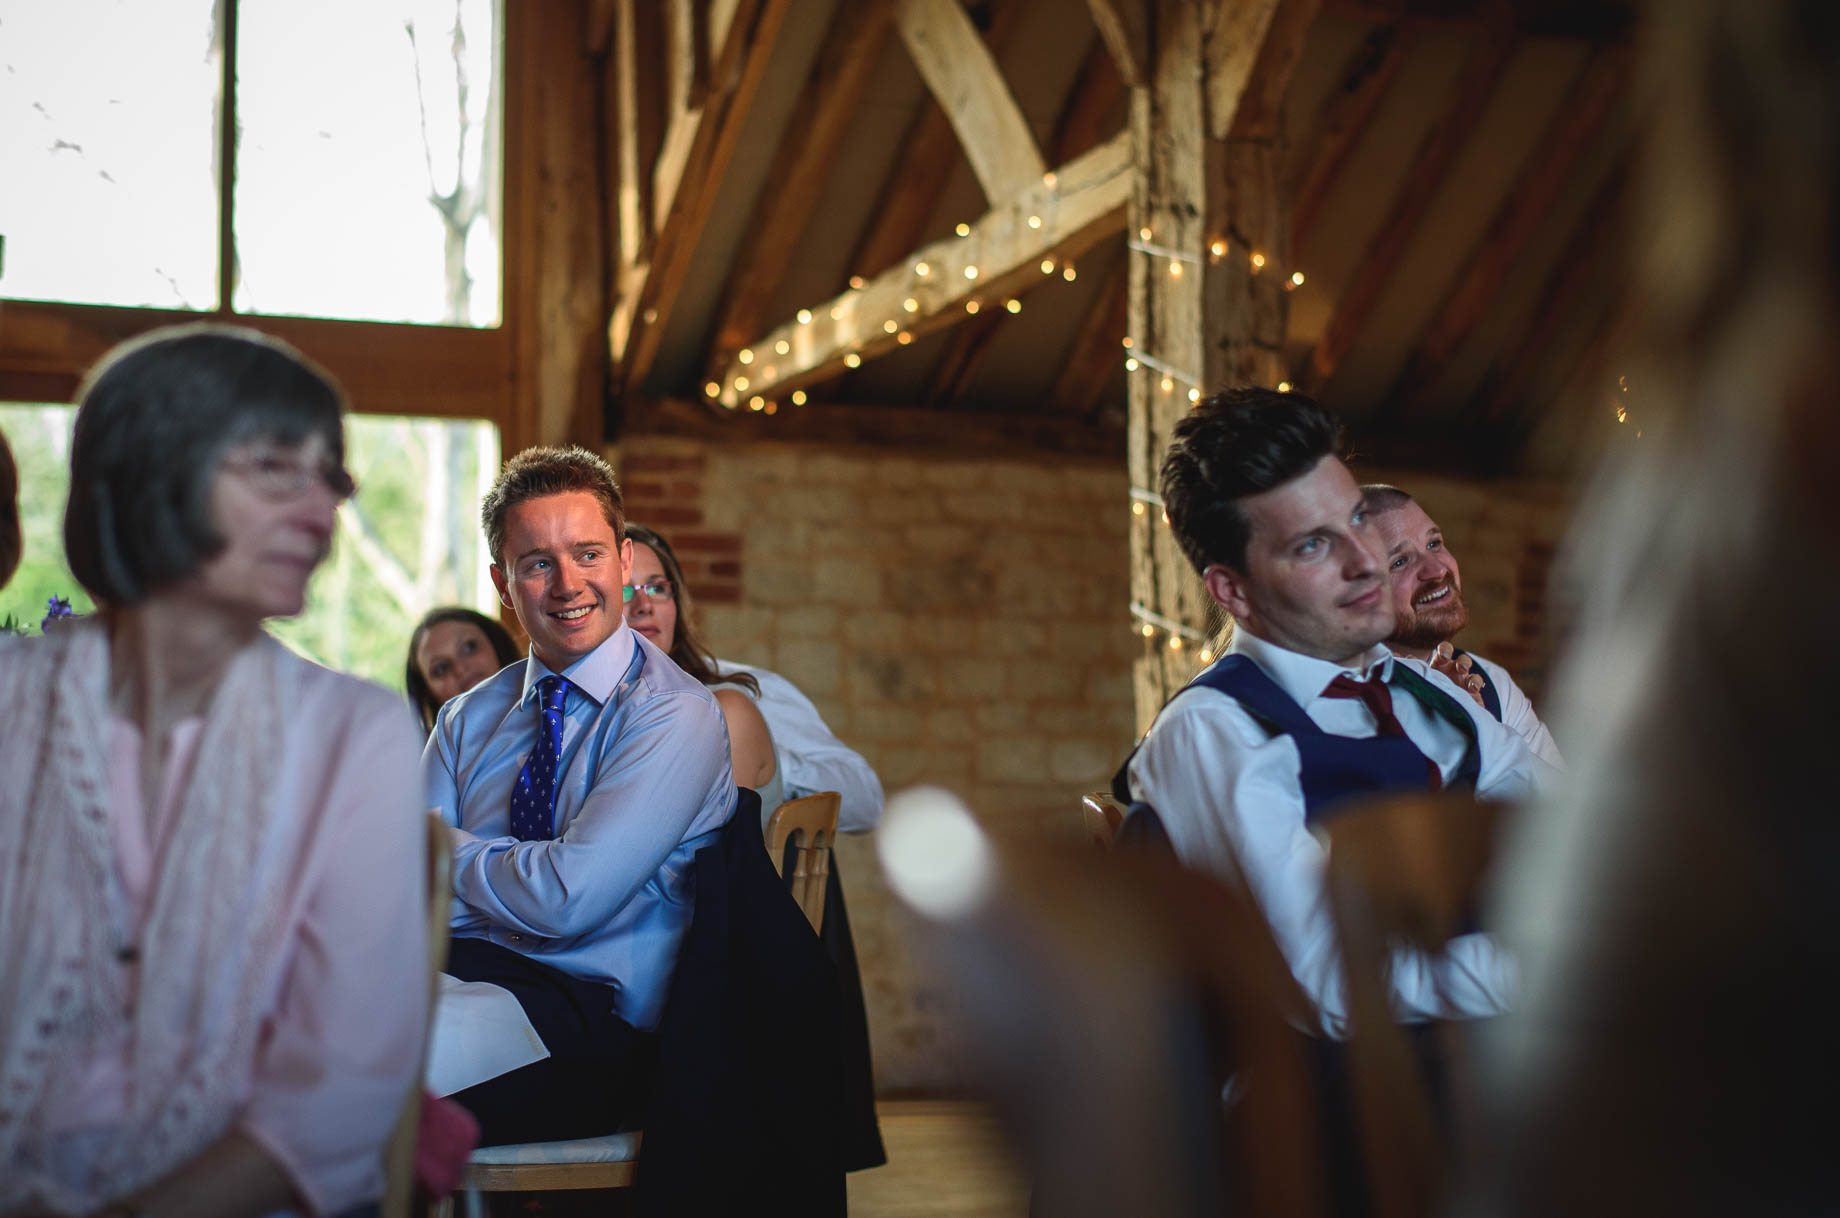 Bury Court Barn wedding photography by Guy Collier - Heather and Pat (134 of 170)